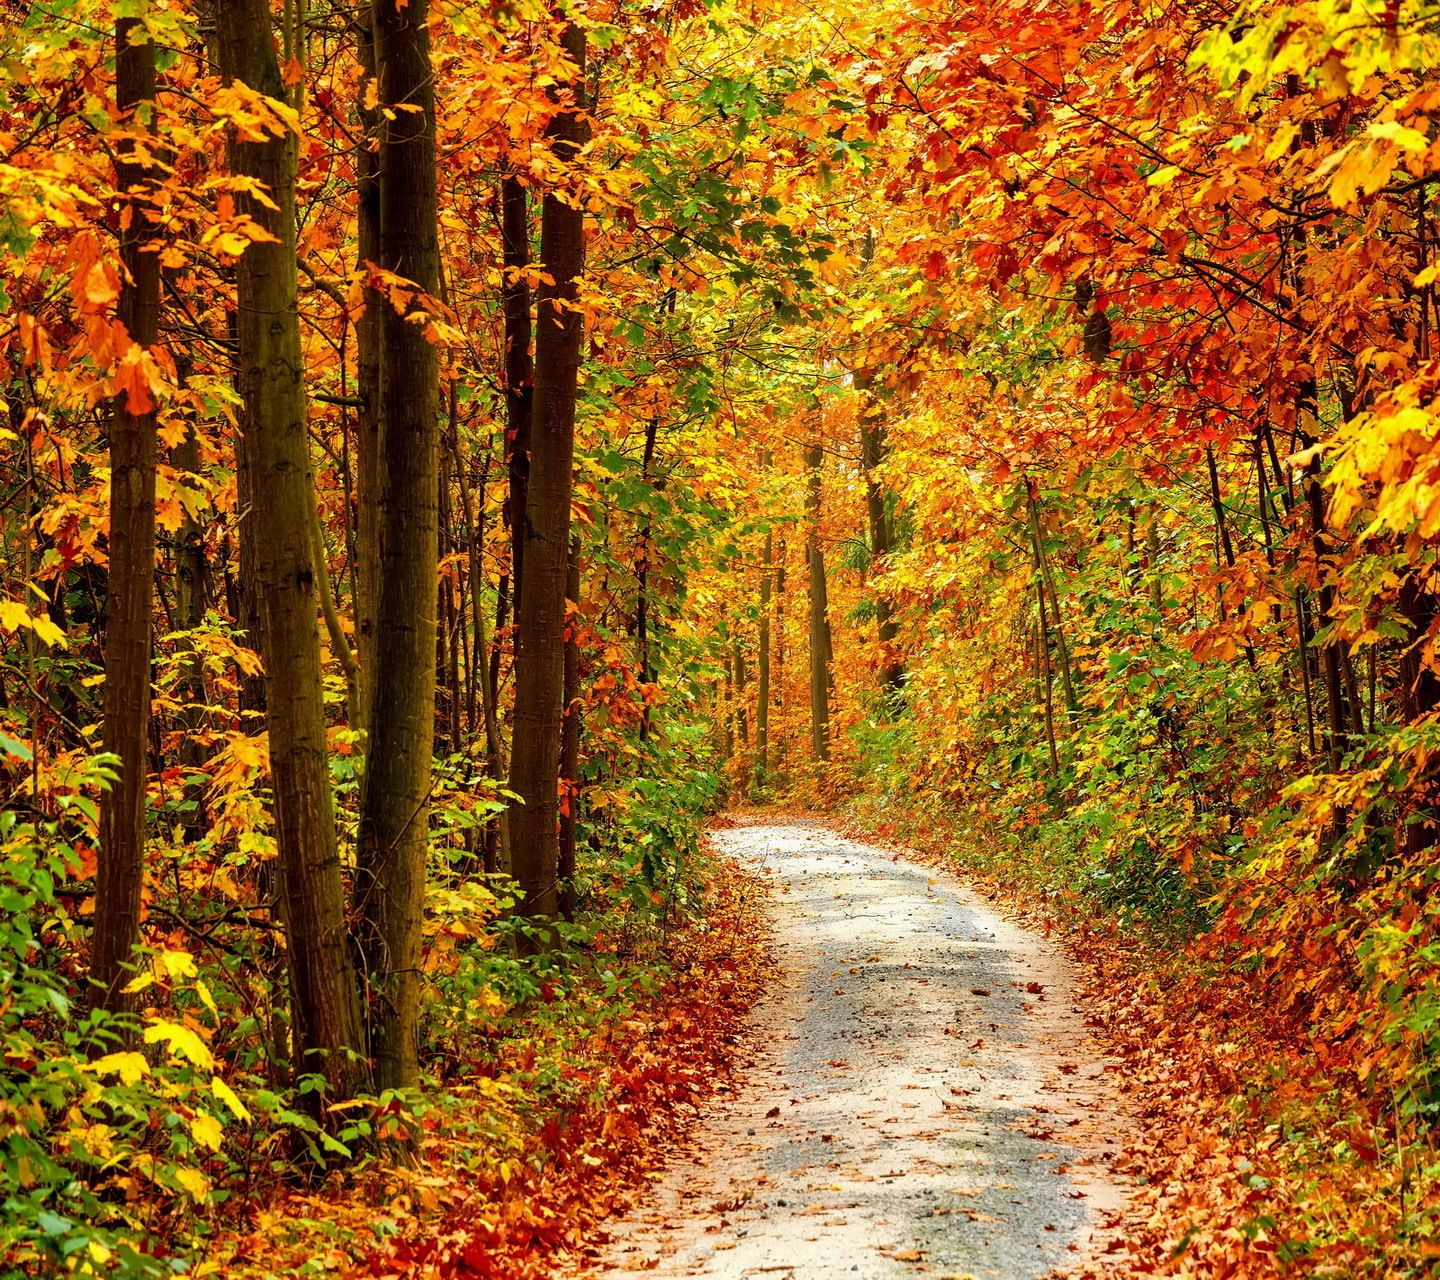 Autumn_Road-wallpaper-10380415.jpg